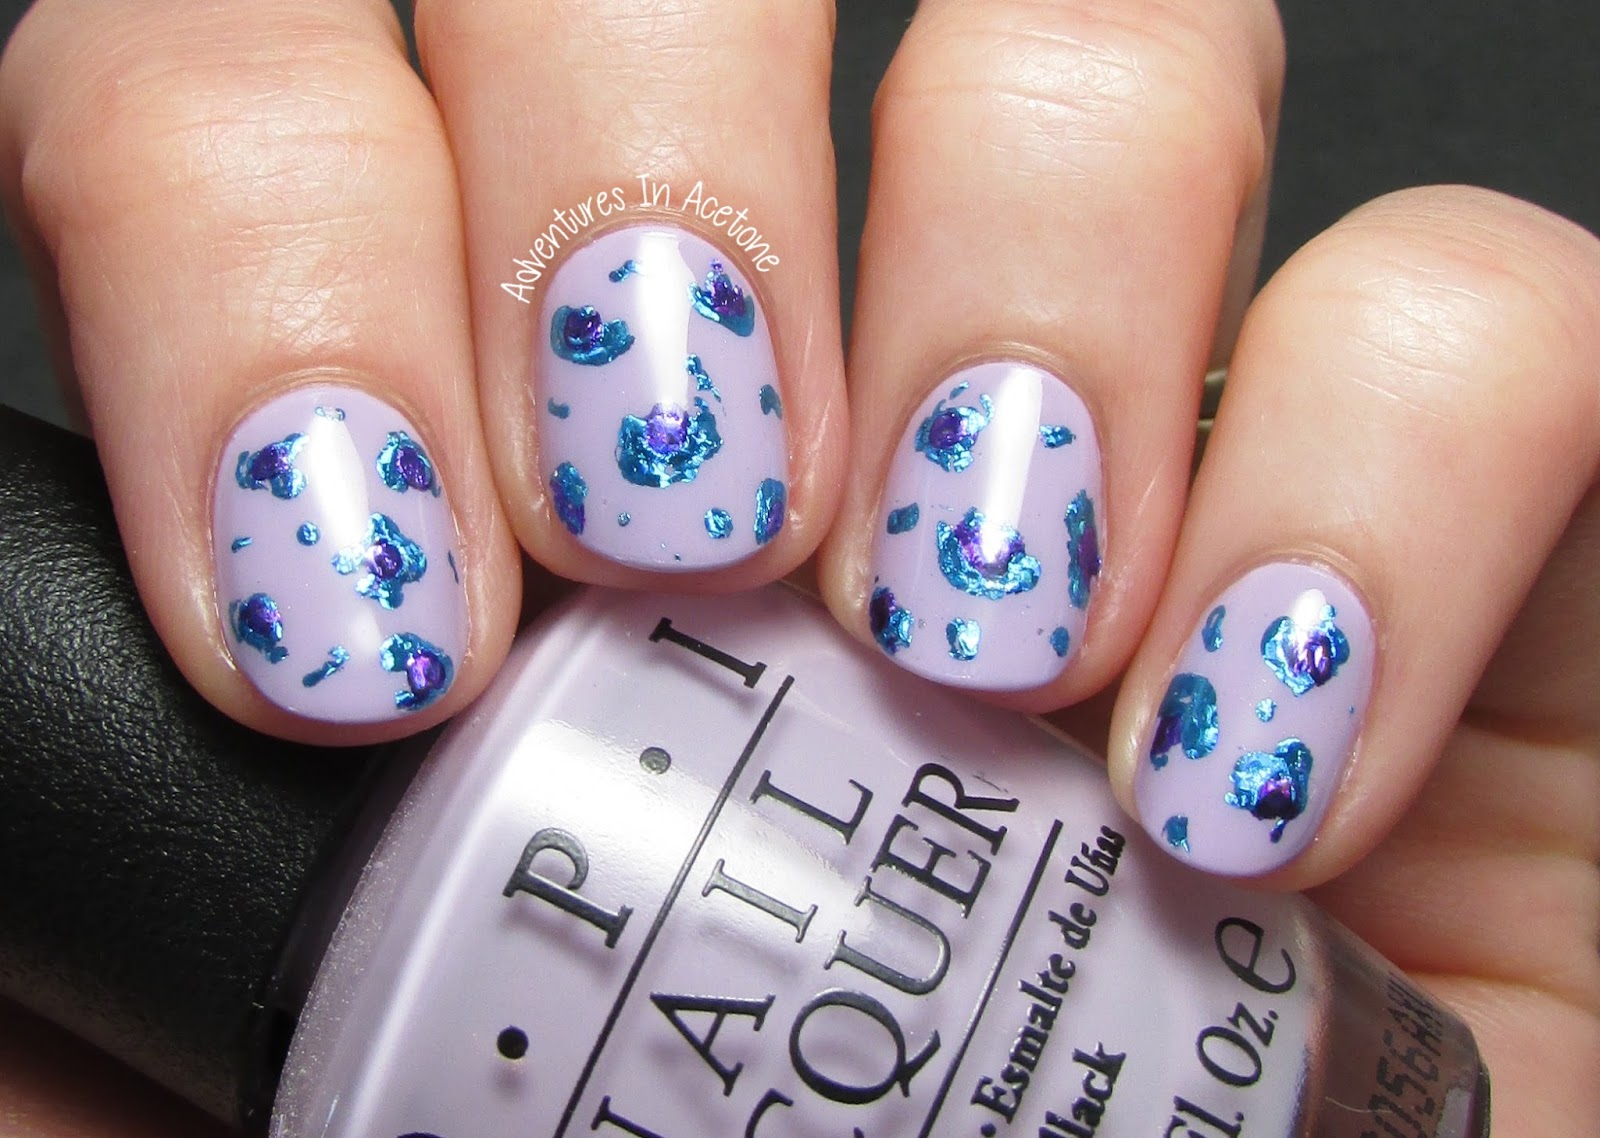 Leopard Nail Art with Foils! - Adventures In Acetone